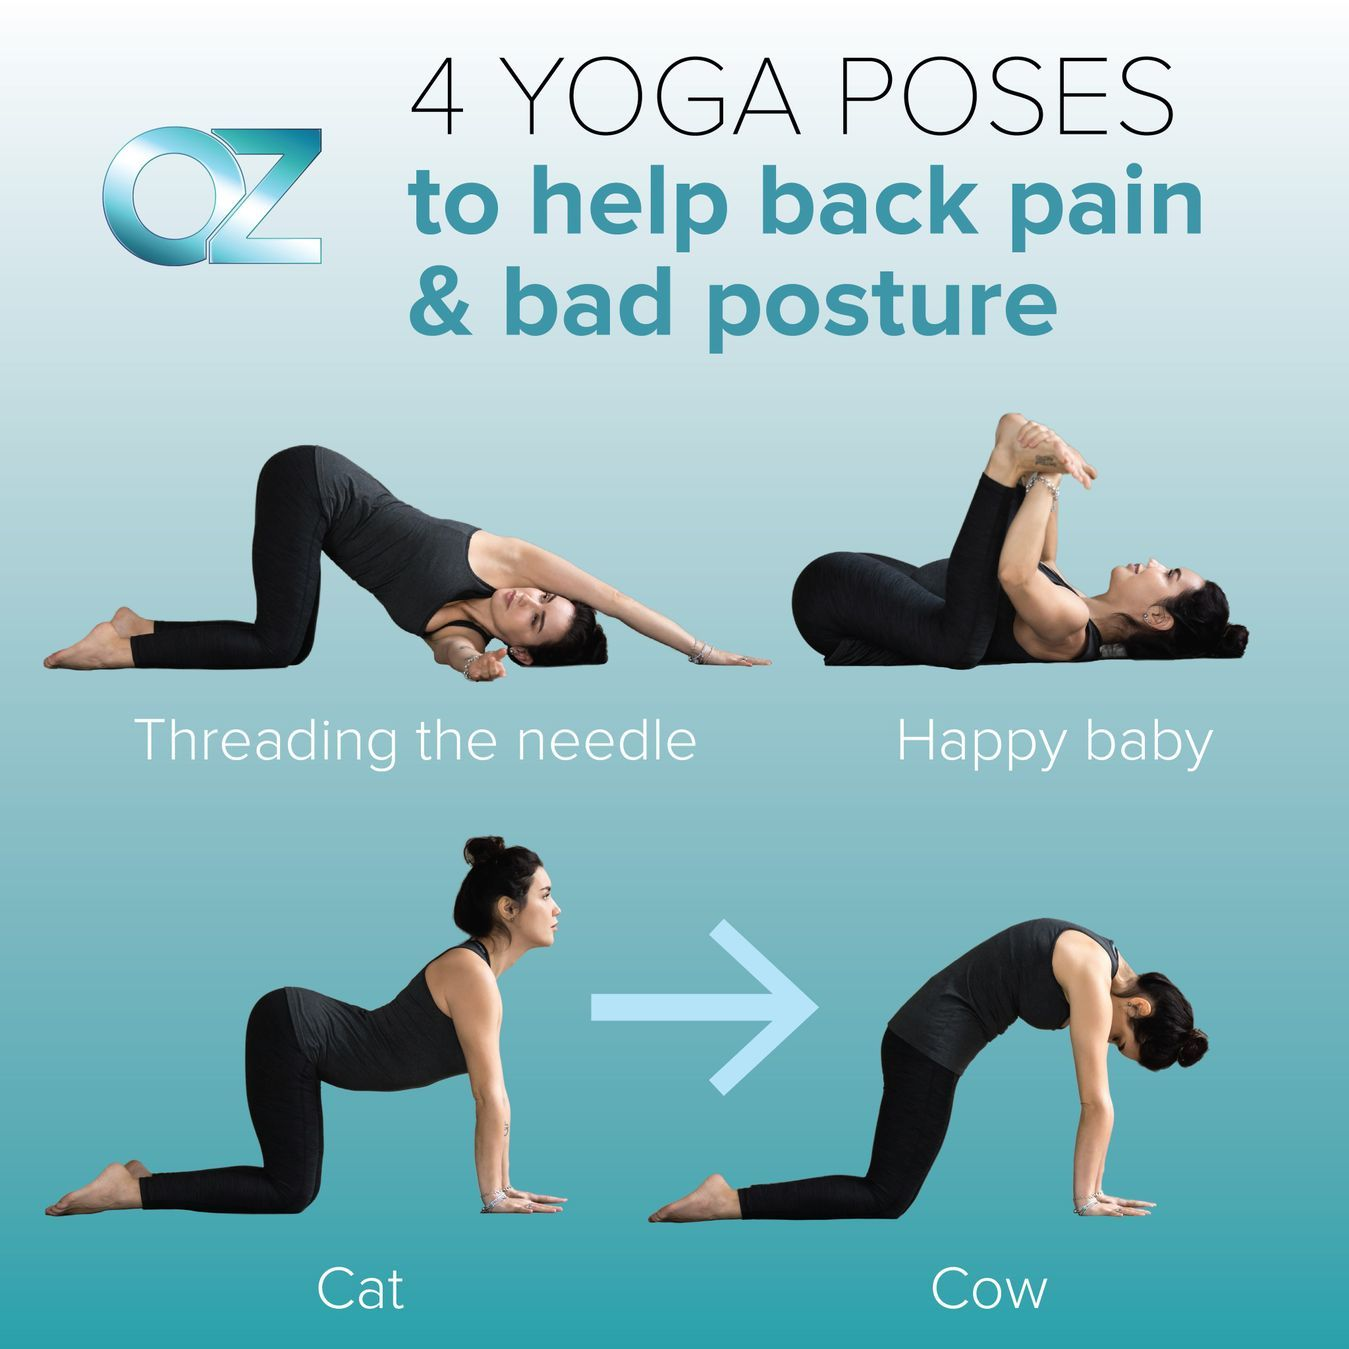 17+ Yoga sequence for back pain ideas in 2021